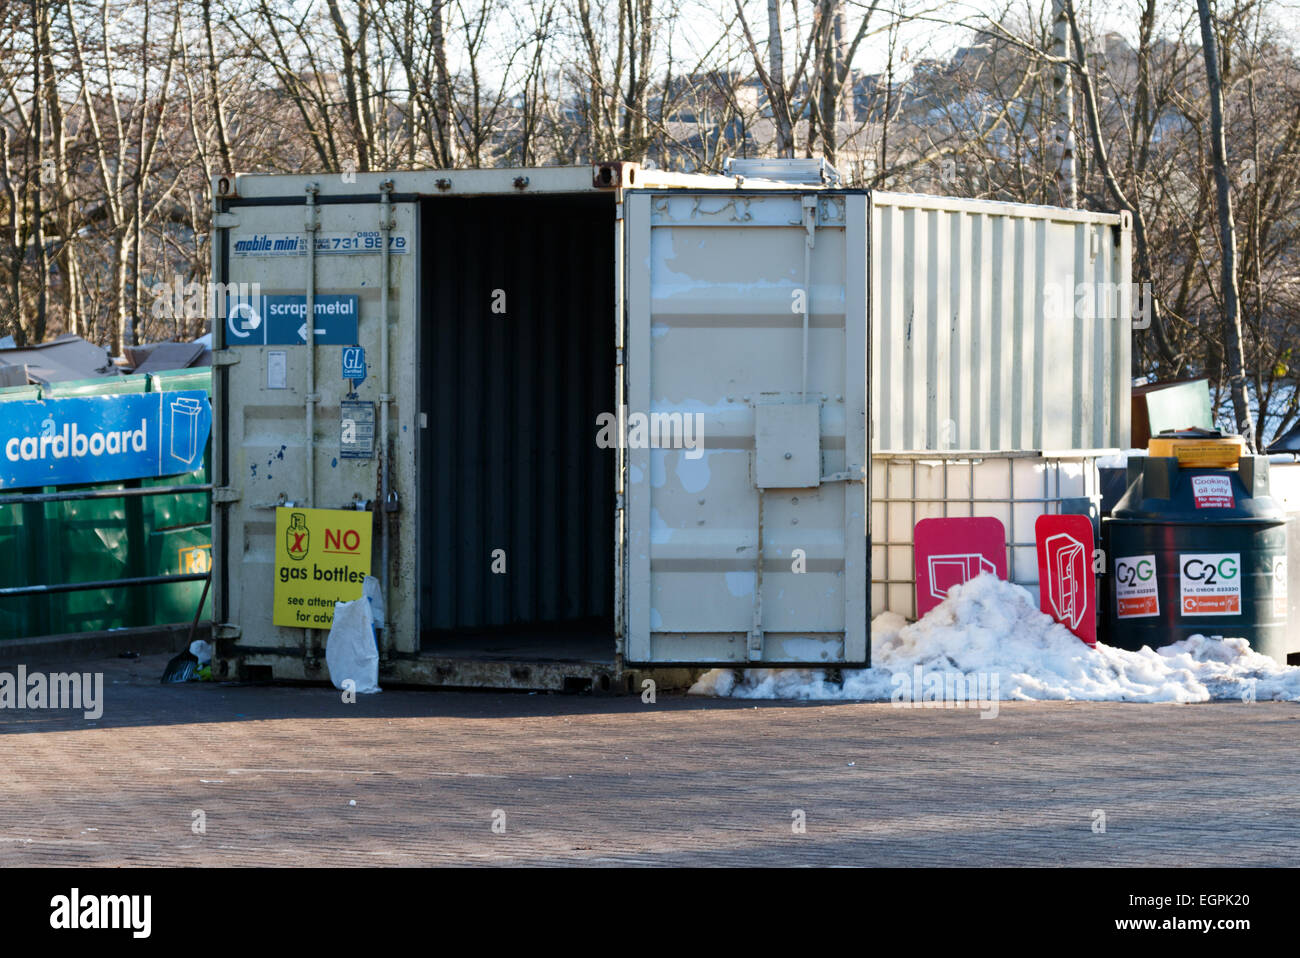 Domestic household waste collection and recycling centre in the UK. Council rubbish tip. - Stock Image